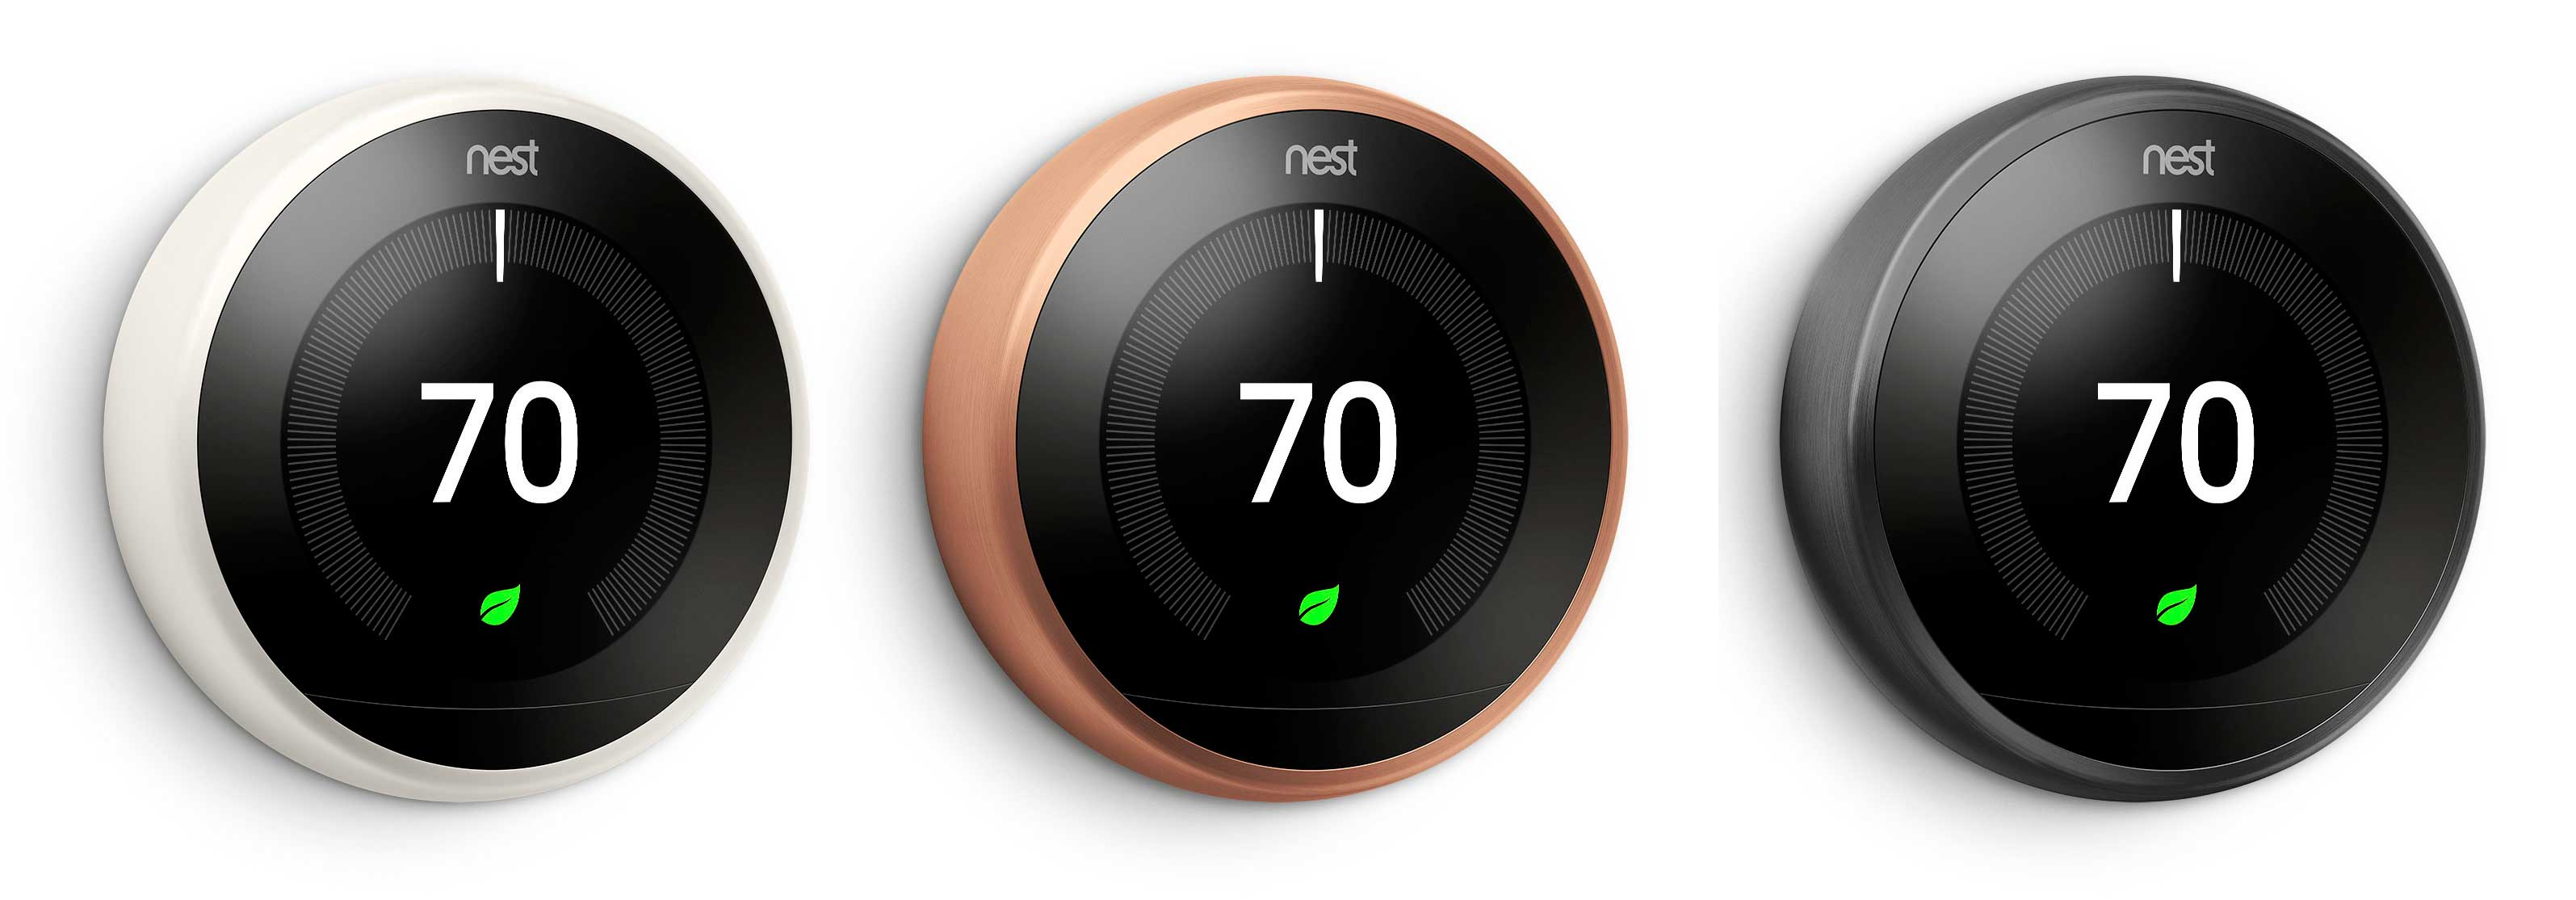 Nest's smart thermostat is now available in 3 new colors: White, copper, and black.